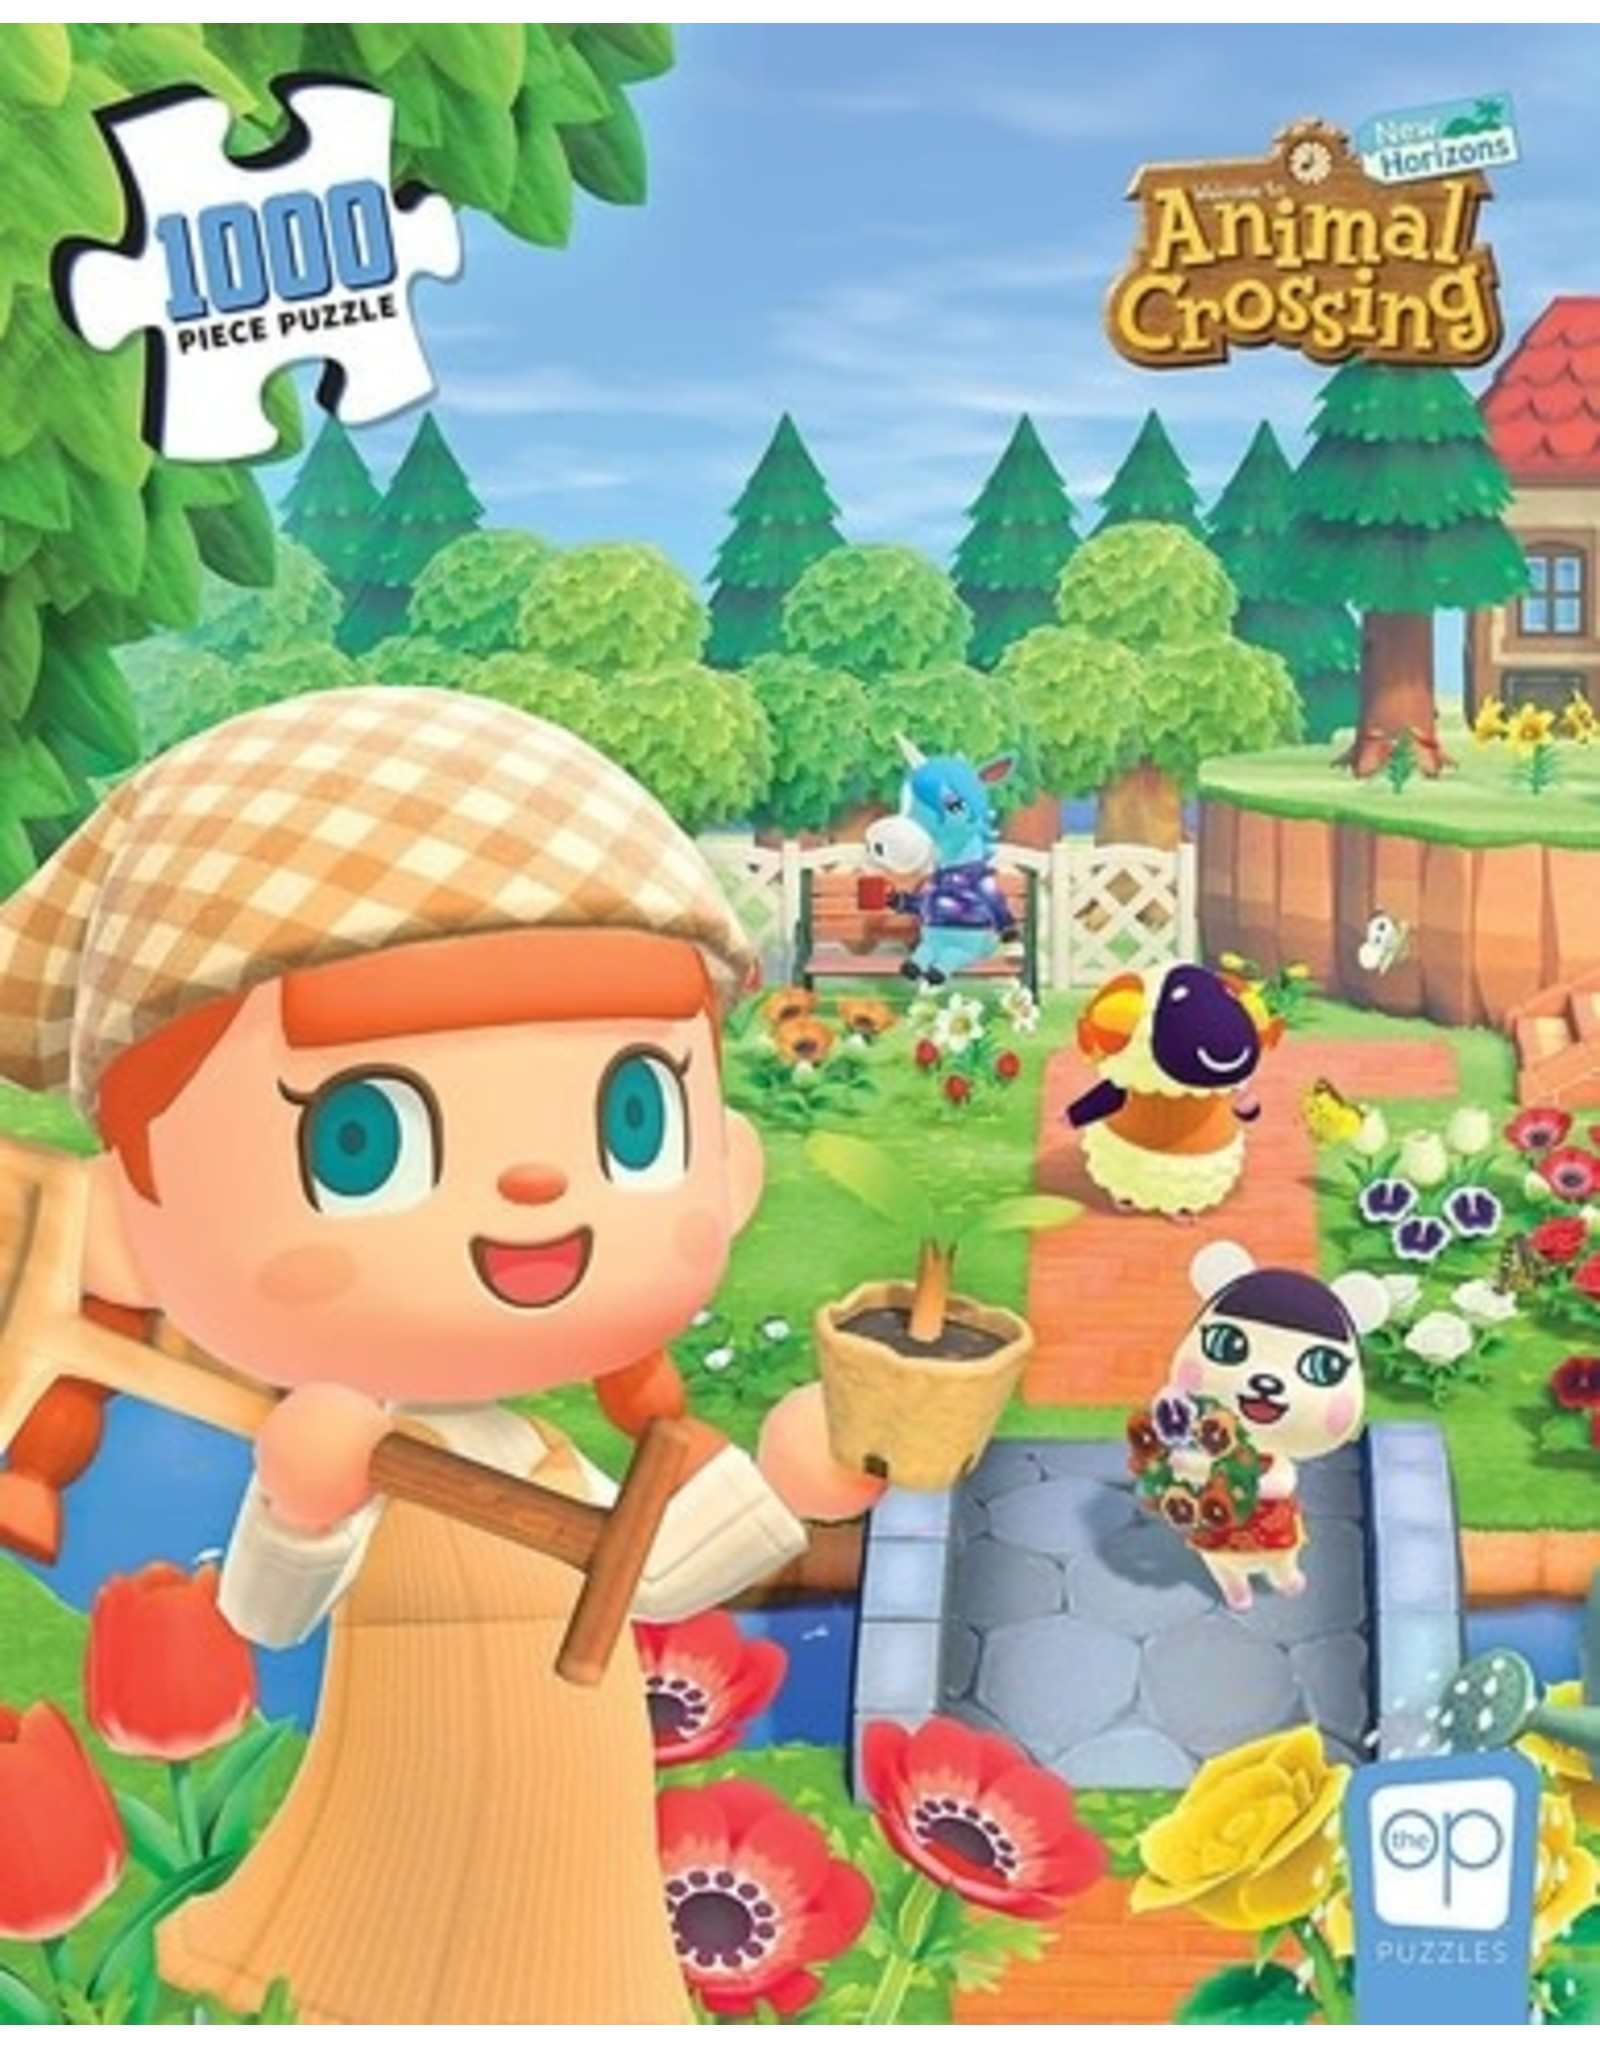 """OP Animal Crossing """"New Horizons"""" Puzzle 1000 Pc"""